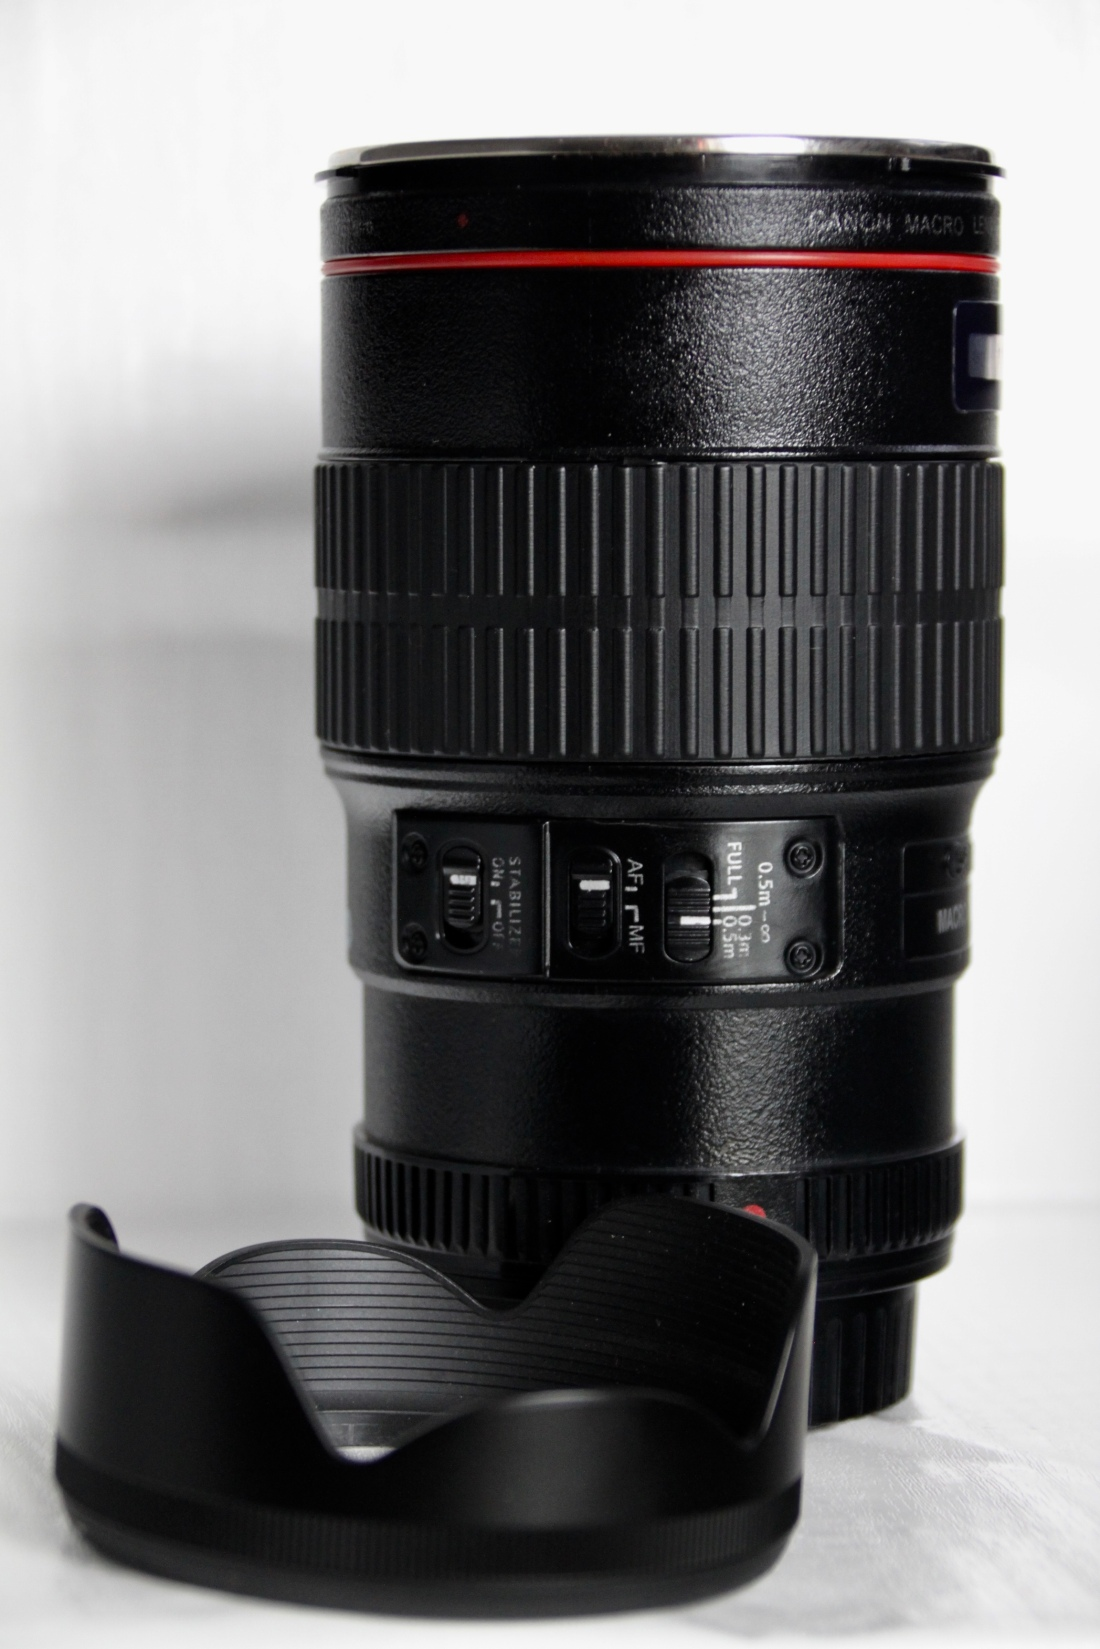 Canon lens mug and cookie holder by Jez Braithwaite